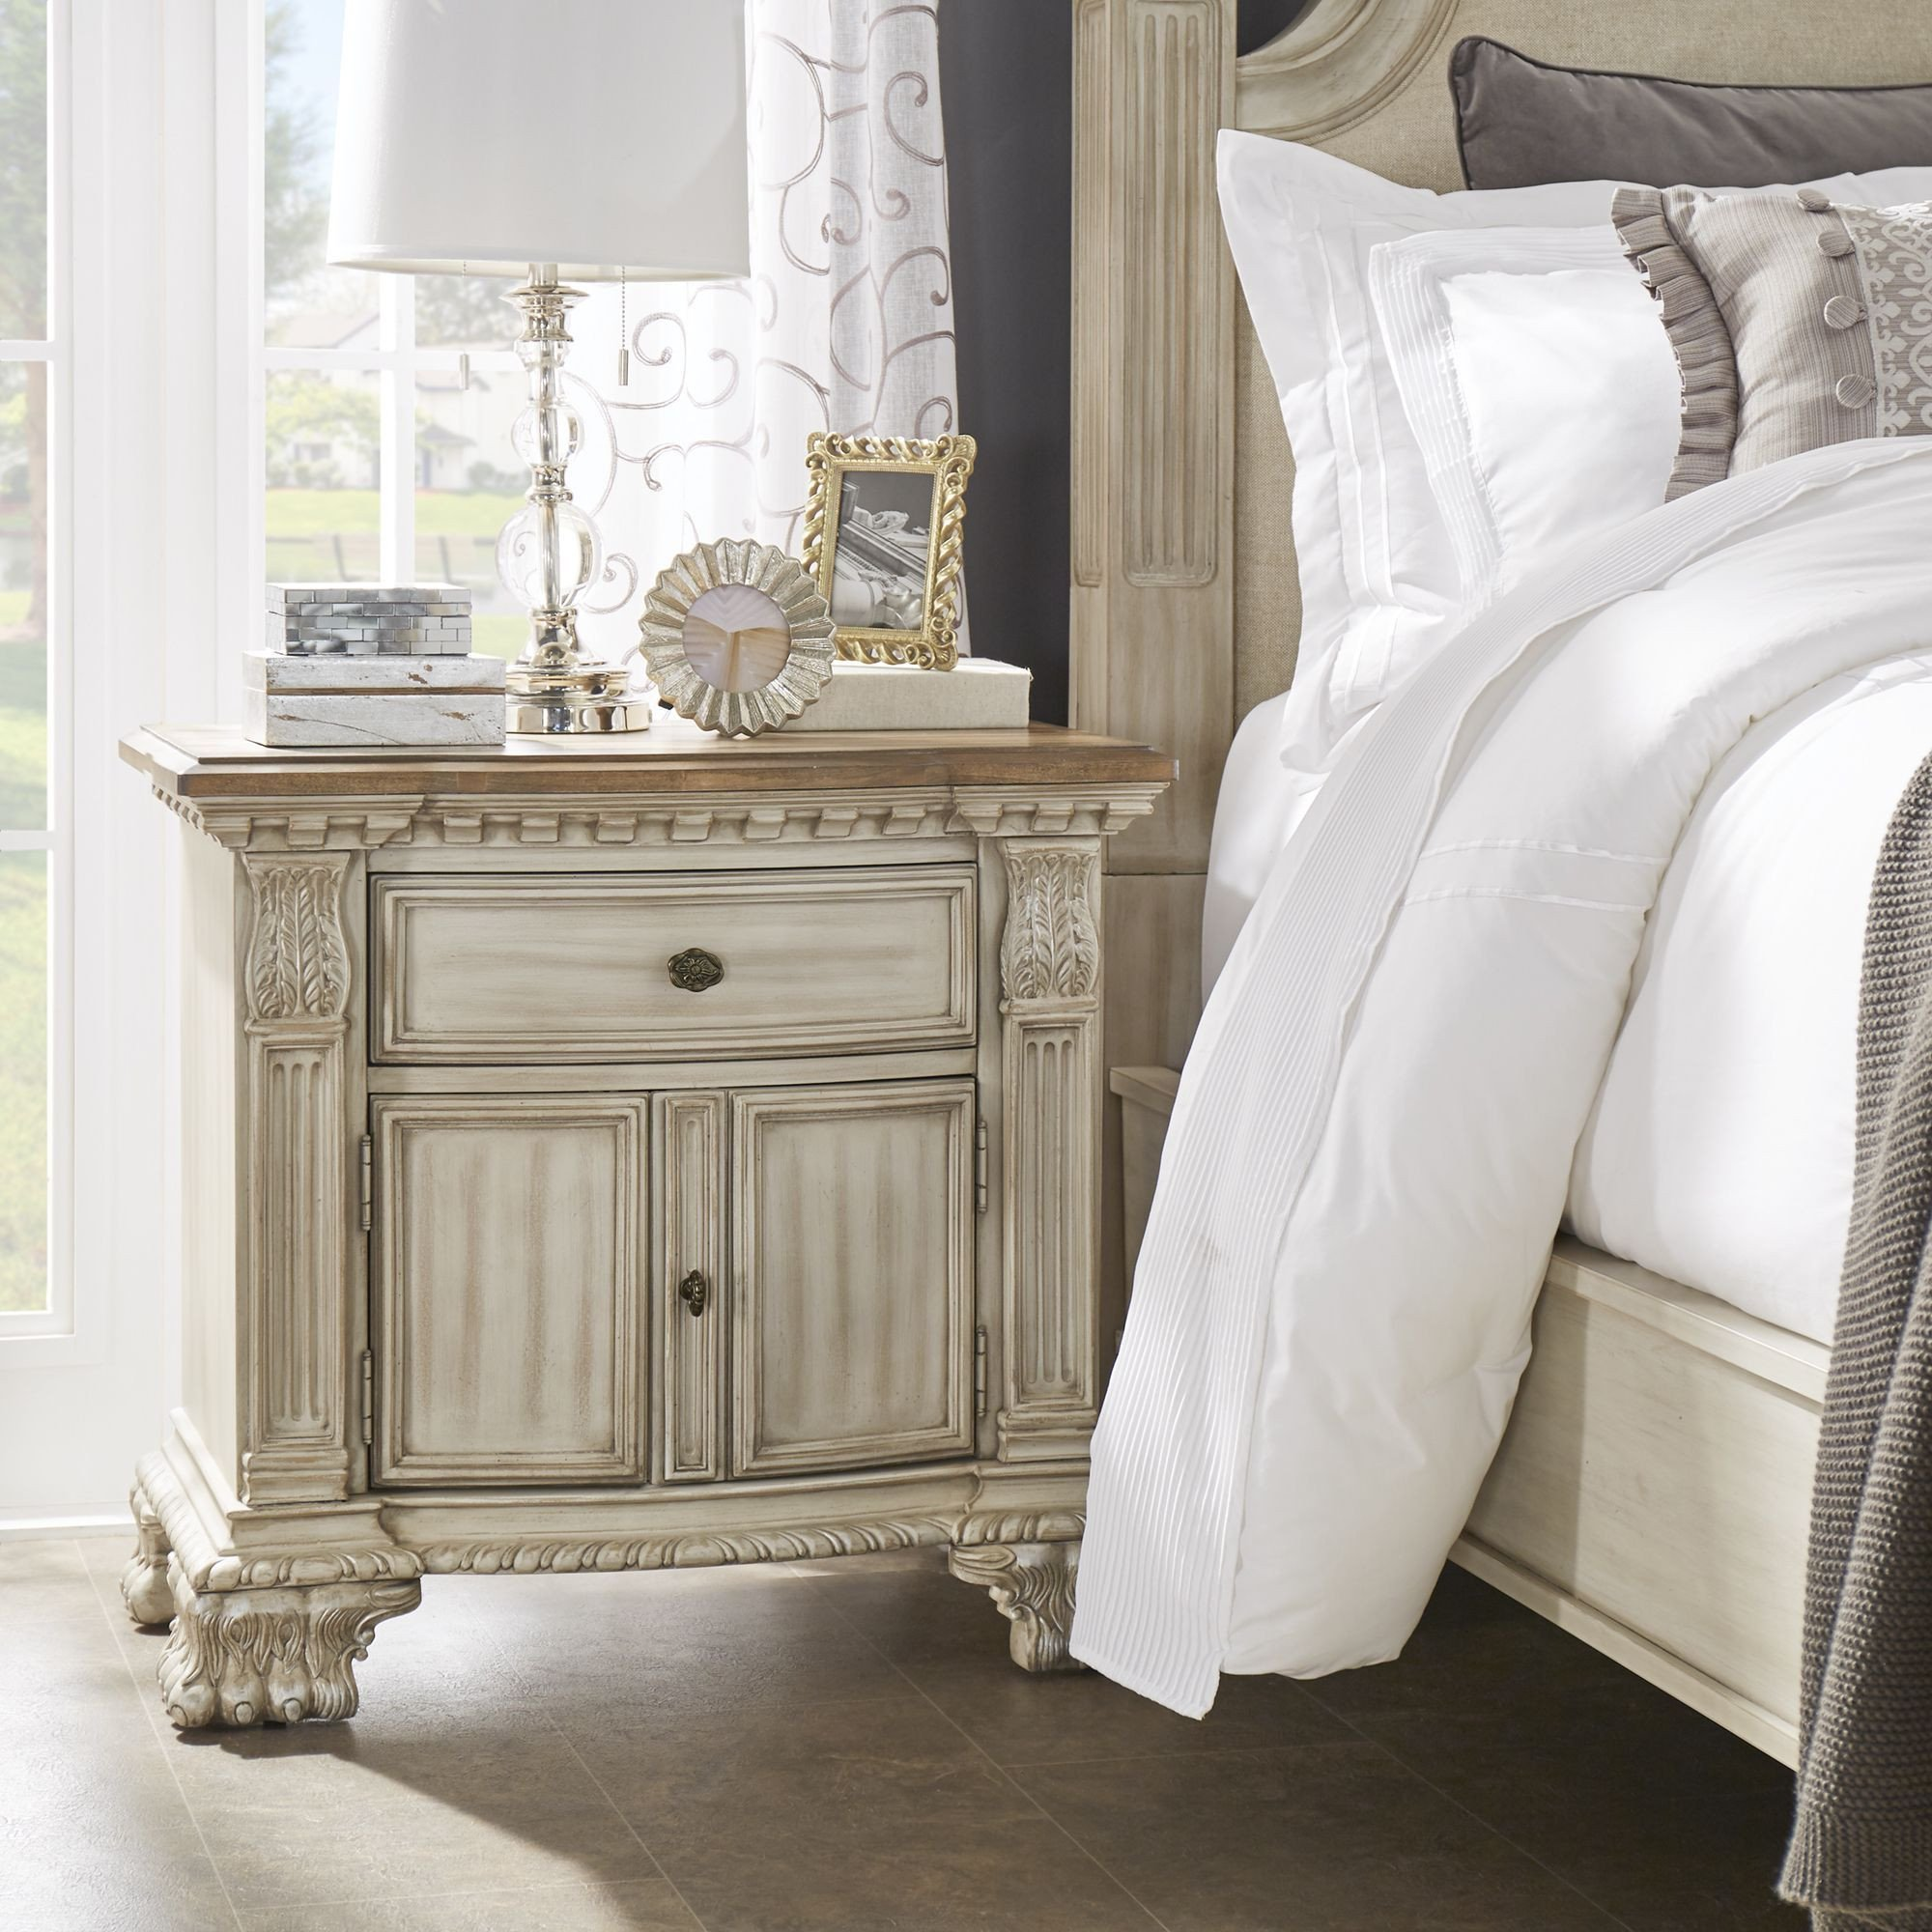 White Washed Bedroom Furniture Set Elegant Decorate Your Room with the Ellina Washed White Finish